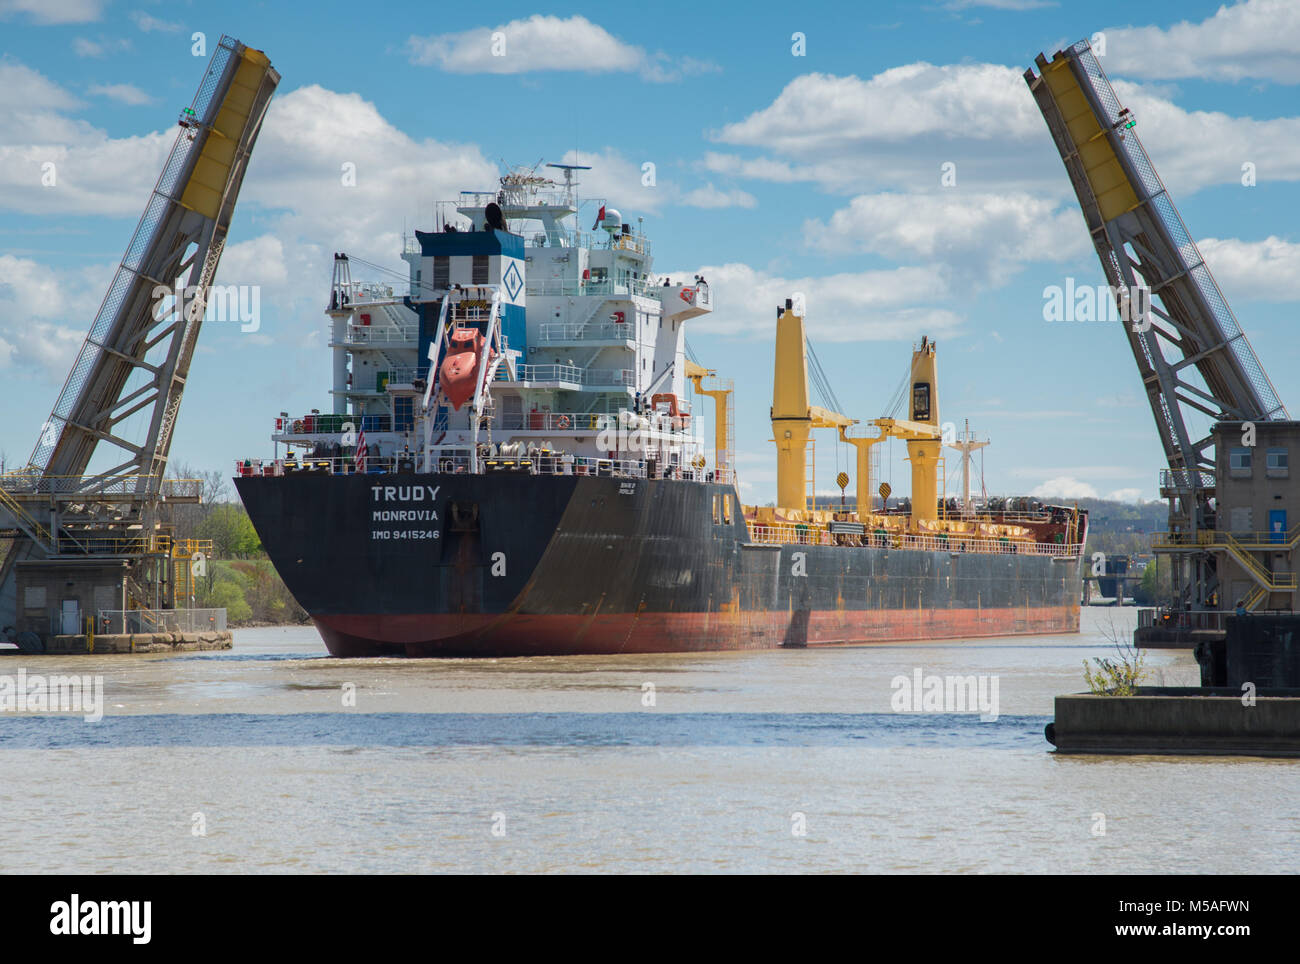 The Trudy General Cargo Ship passing through the Welland Canal - Stock Image